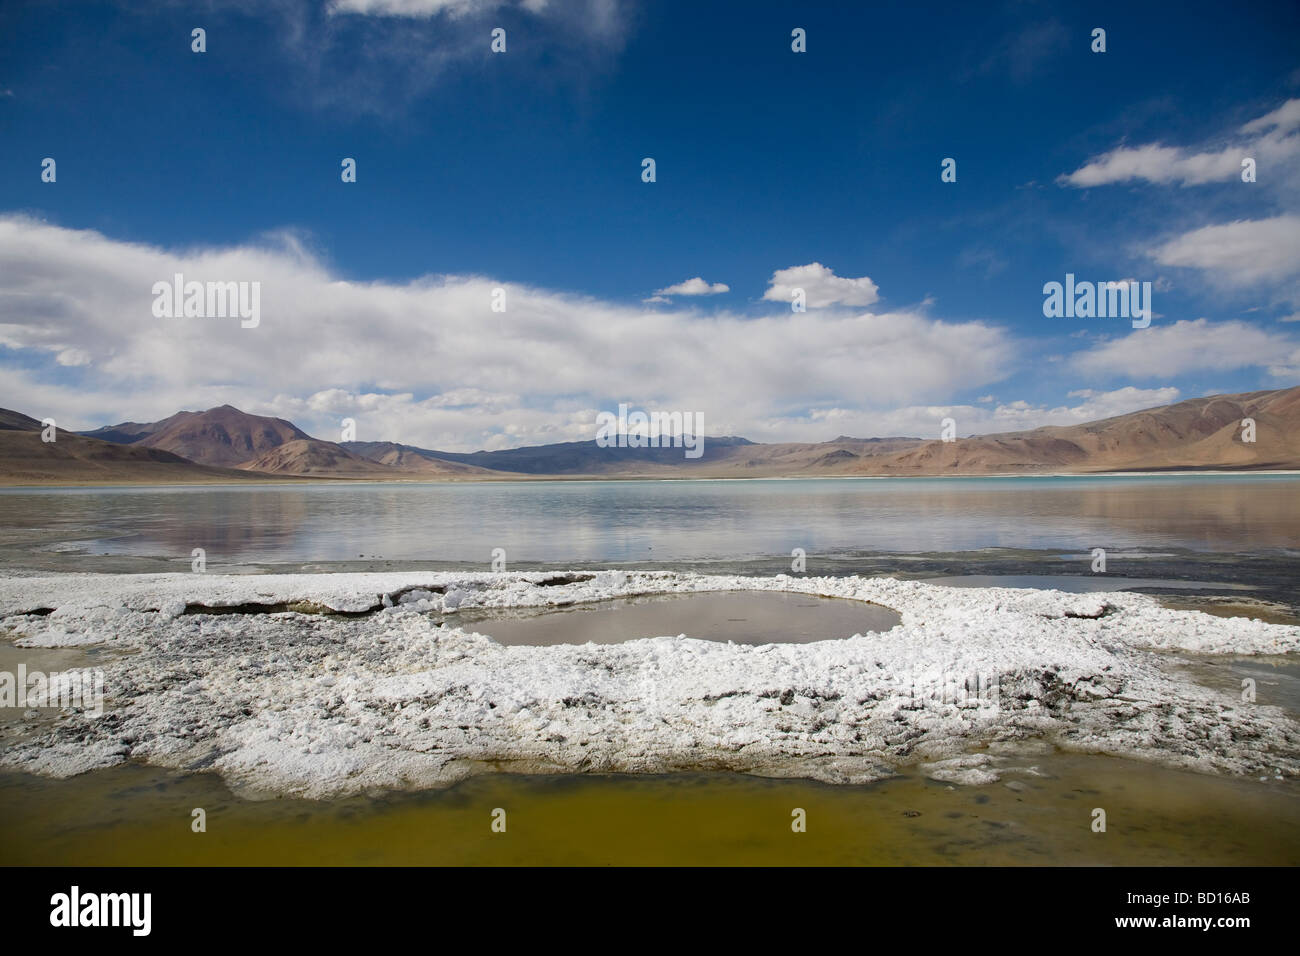 Tso Kar, high altitude brackish lake in the Changthang plateau of Ladakh. Jammu & Kashmir, India. - Stock Image